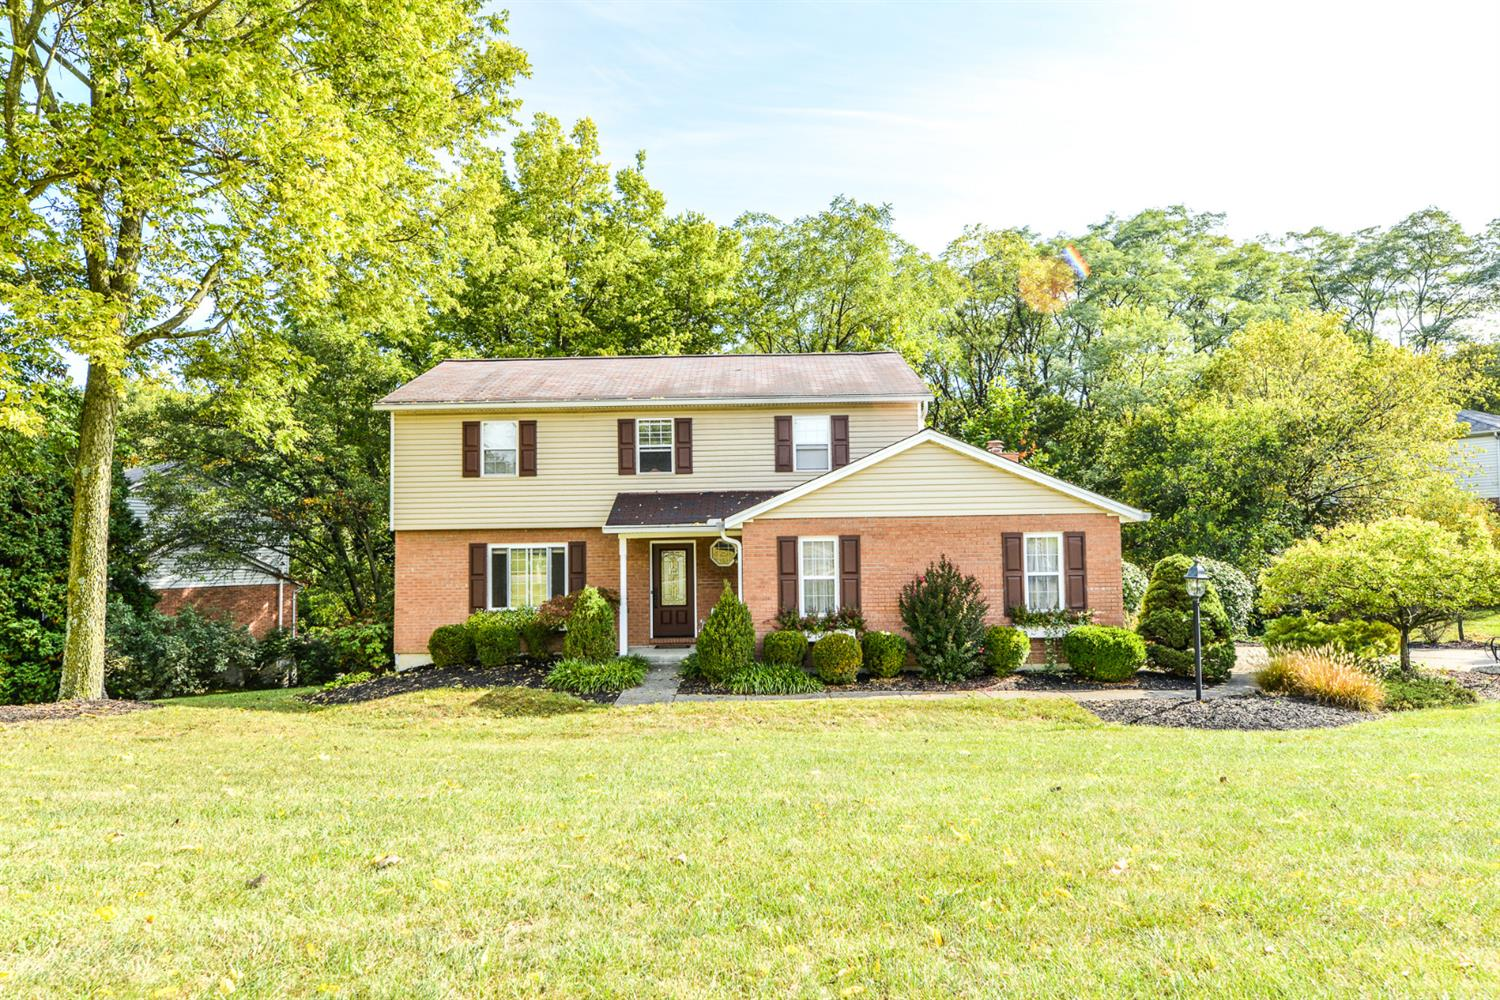 Great value in West Chester for this 4BR home on almost 1/2 acre lot! Move-in, kitchen & baths already remodeled! HVAC '20, water heater '18. Open family room/kitchen, wired for home theater, gas fireplace. Unfinished basement w/walkout. Master BR has attached 2nd bedroom, sitting area, skylights, custom tiled shower, w/in closet.